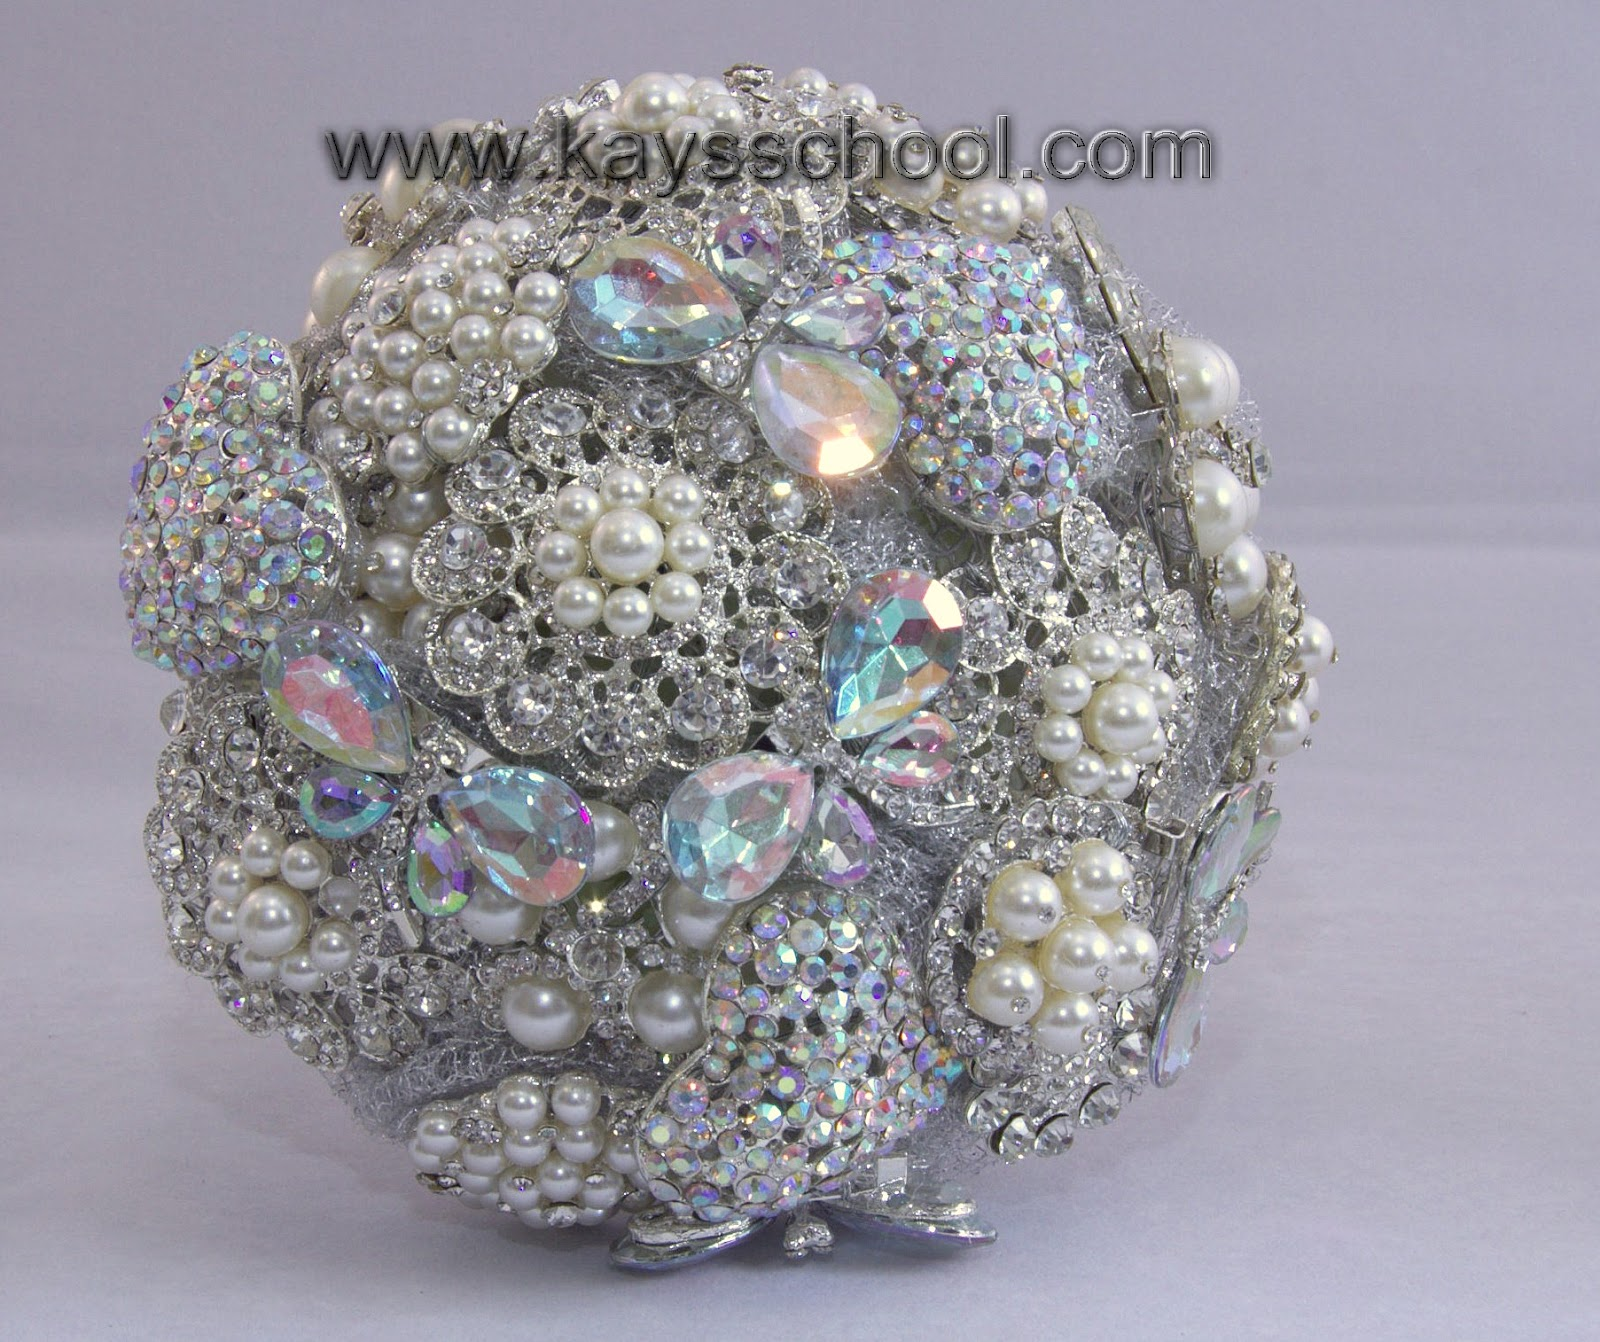 On Top Of The Tuition For Making A Standard Posie Round Shape Brooch Bouquets We Can Also Send You More Advanced Step By How To Make